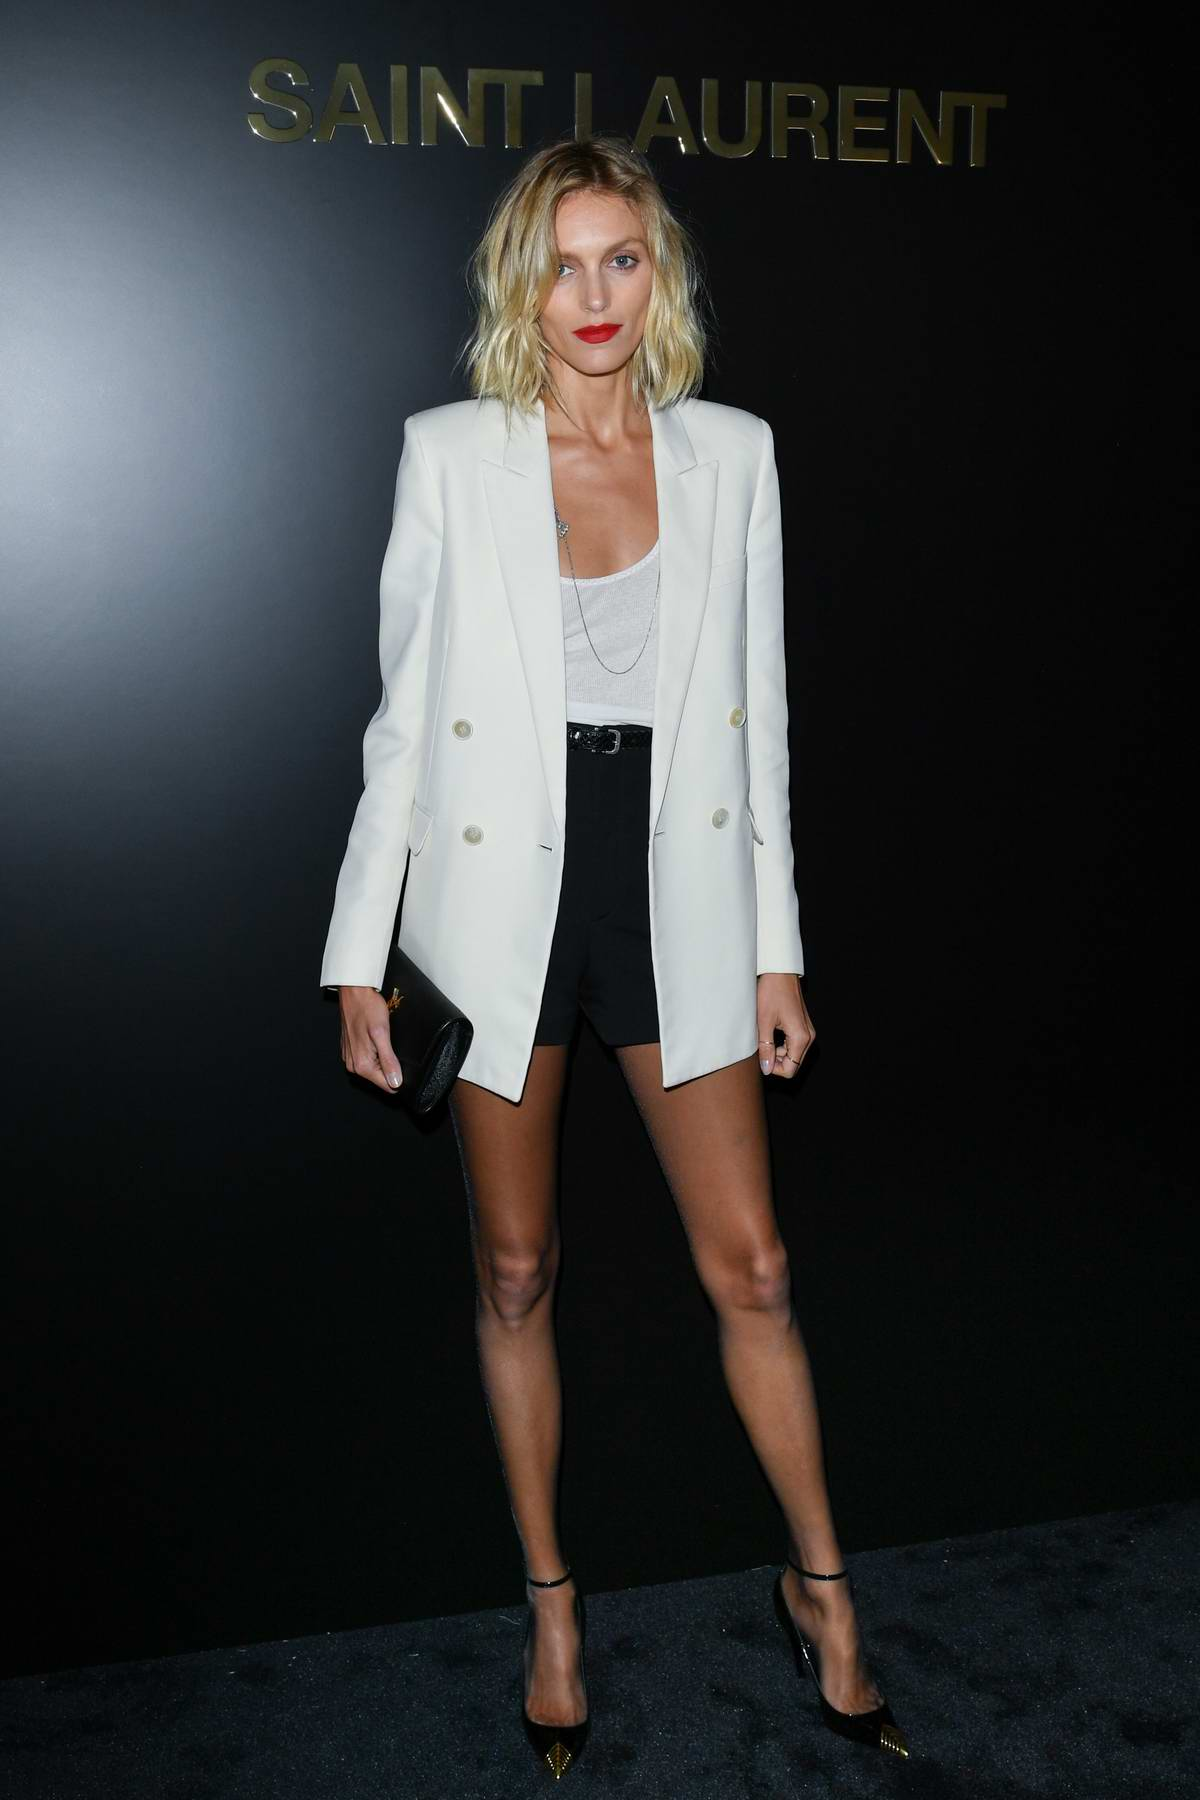 Anja Rubik attends the Saint Laurent show, F/W 2020 during Paris Fashion Week in Paris, France